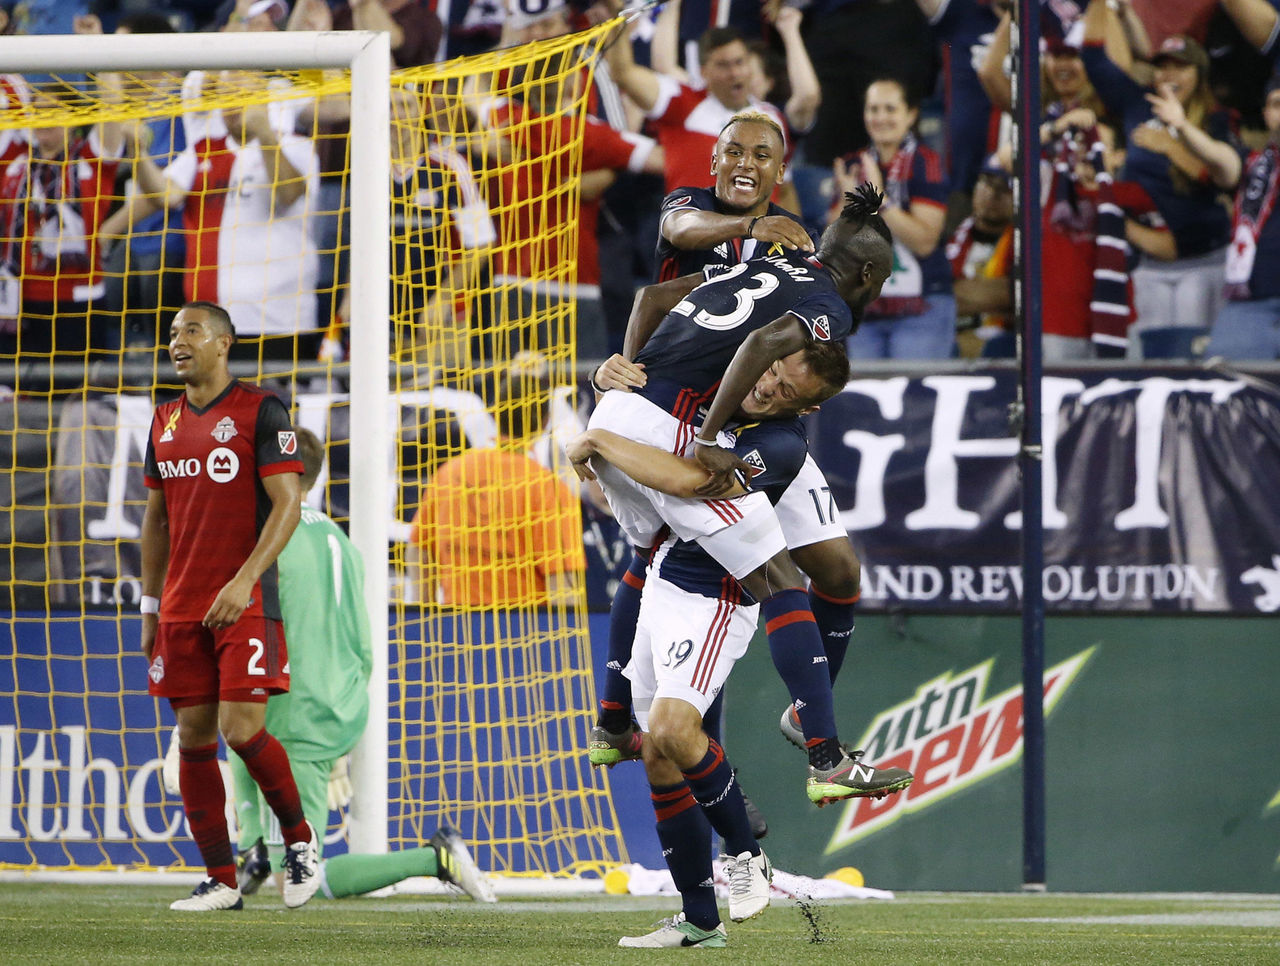 Cropped 2017 09 23t231946z 1962950083 nocid rtrmadp 3 mls toronto fc at new england revolution